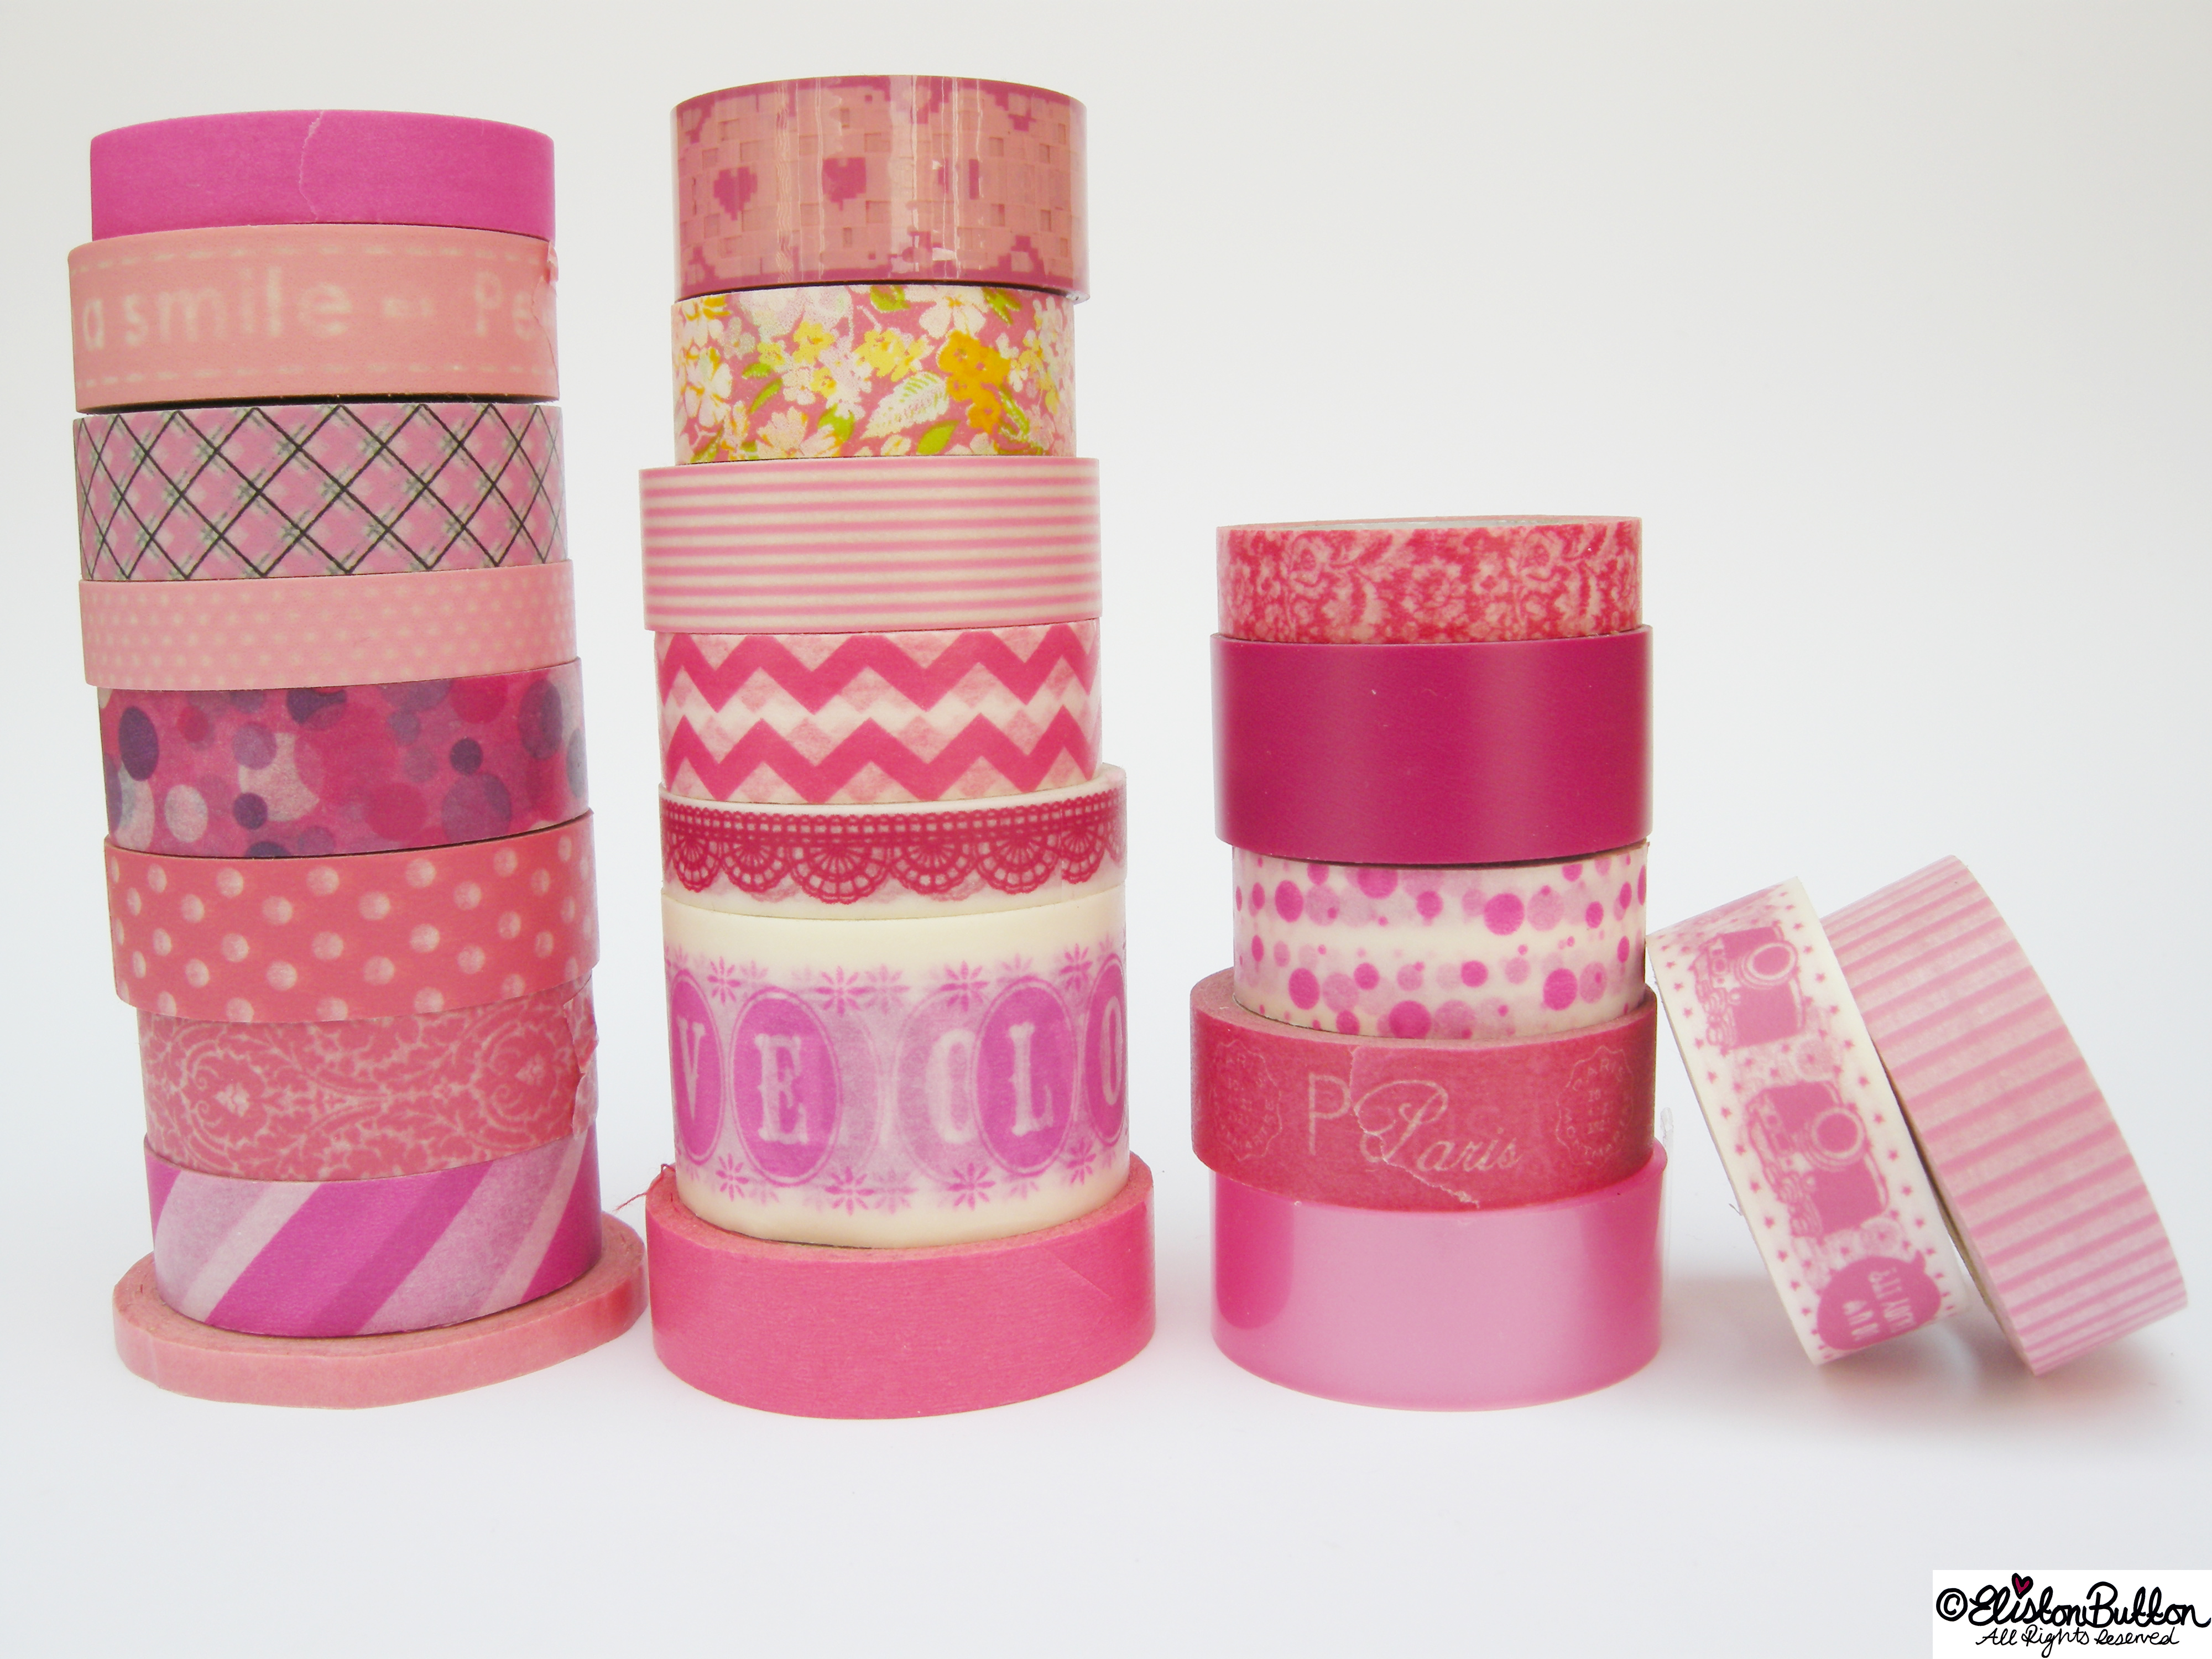 Pretty Pink Piles of Washi Tape Rolls - My Washi Tape Collection at www.elistonbutton.com - Eliston Button - That Crafty Kid – Art, Design, Craft & Adventure.